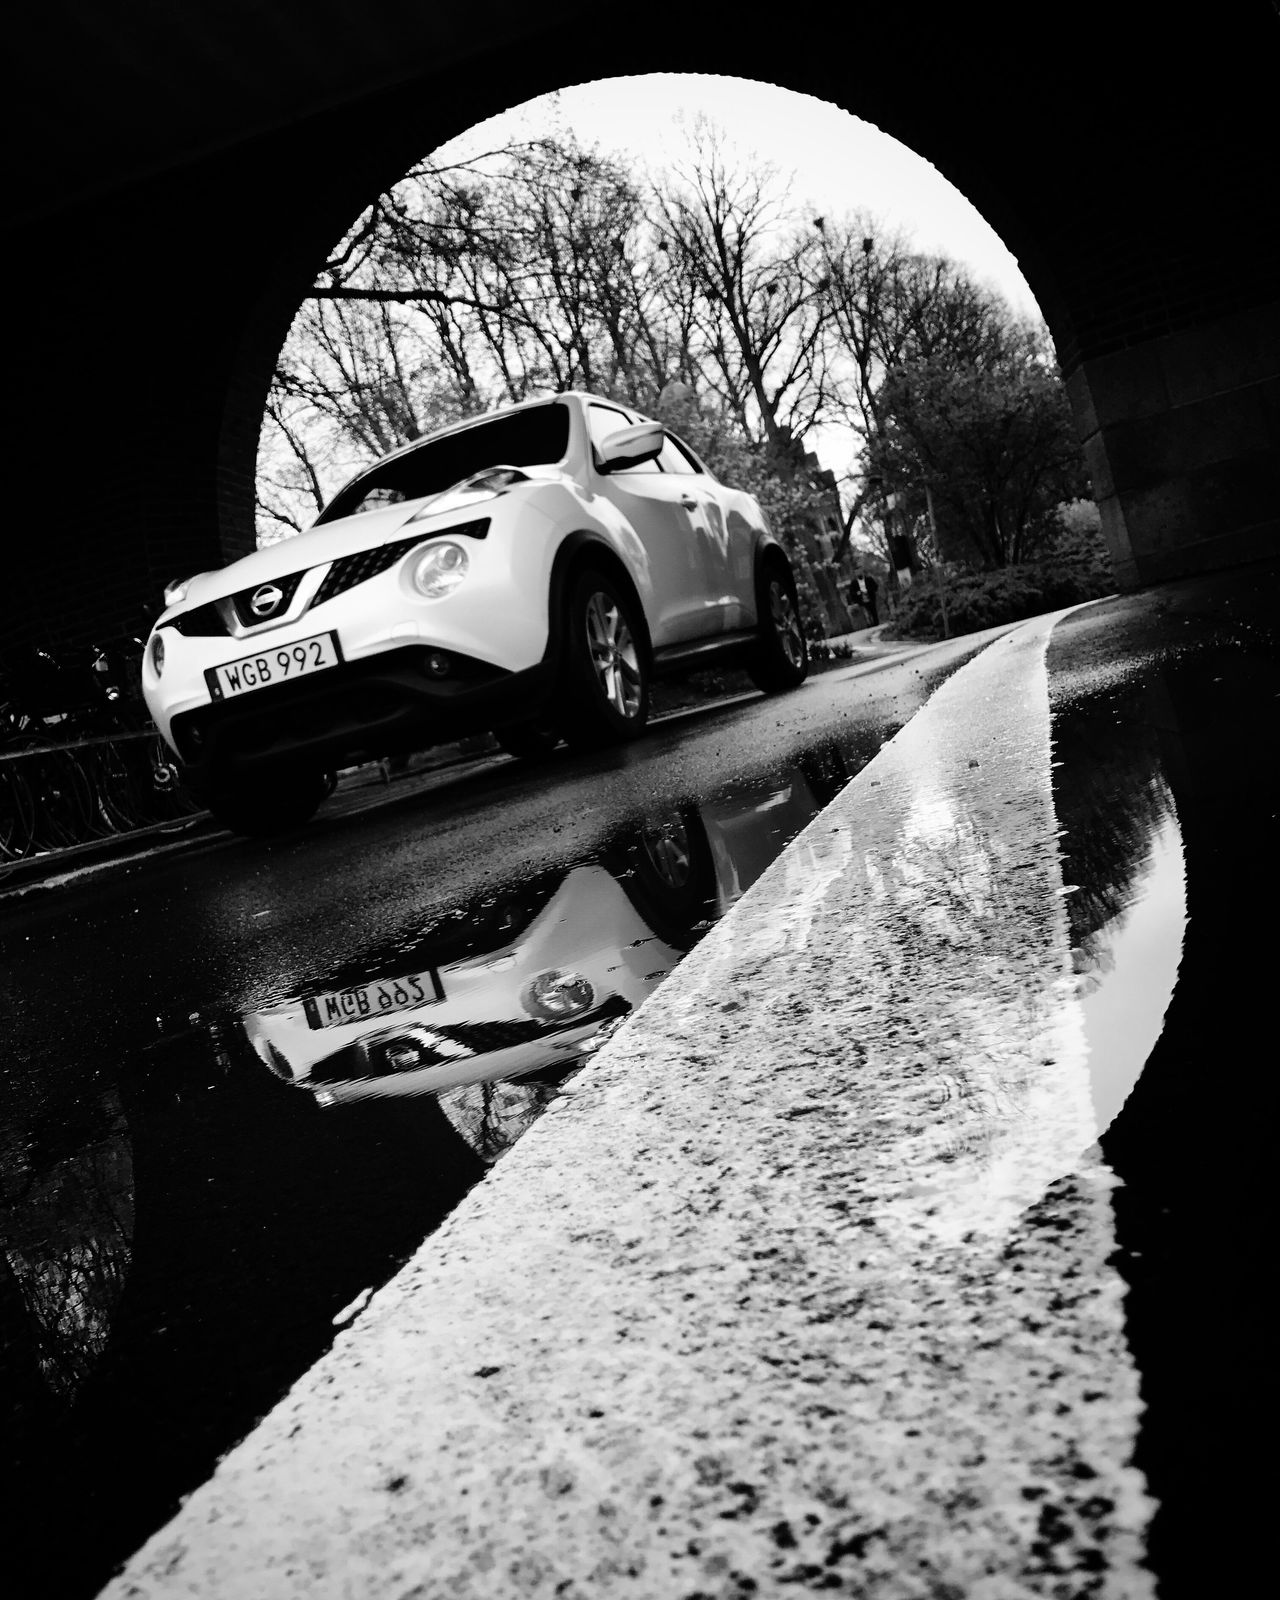 Car Water Puddle Black And White Monochrome Bw_collection Reflection Street Photography Low Angle View